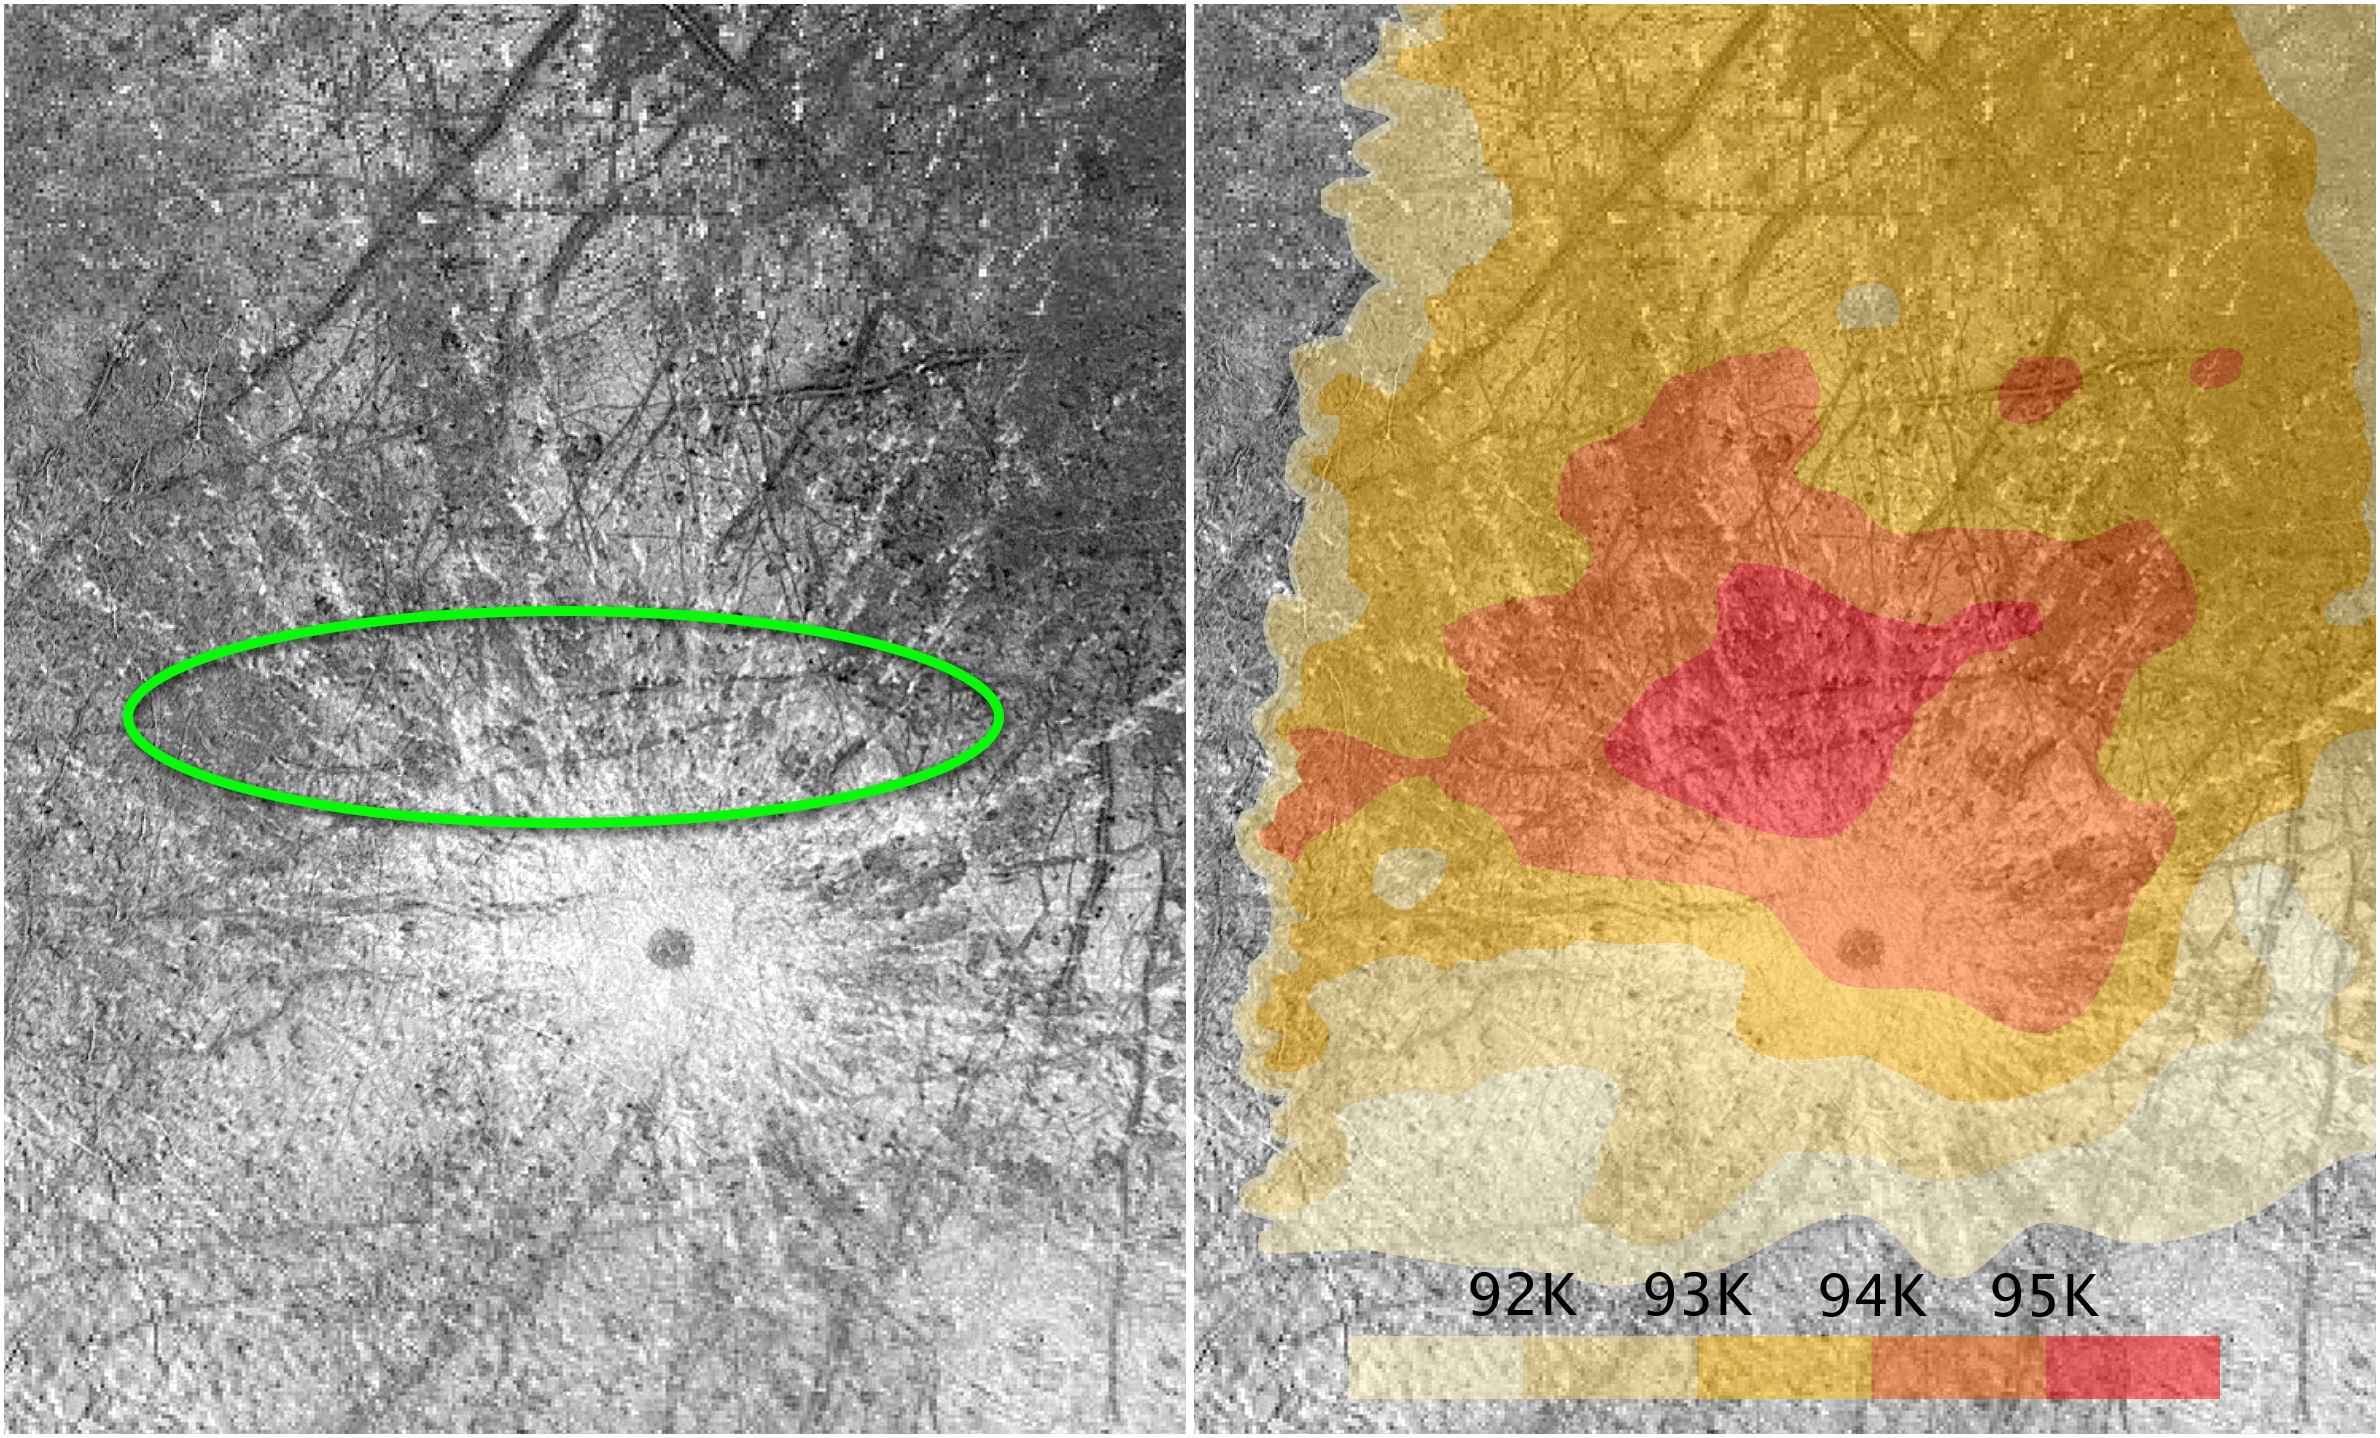 The green oval highlights the plumes Hubble observed on Europa. The area also corresponds to a warm region on Europa's surface. The map is based on observations by the Galileo spacecraft. - Image Credits: NASA/ESA/STScI/USGS